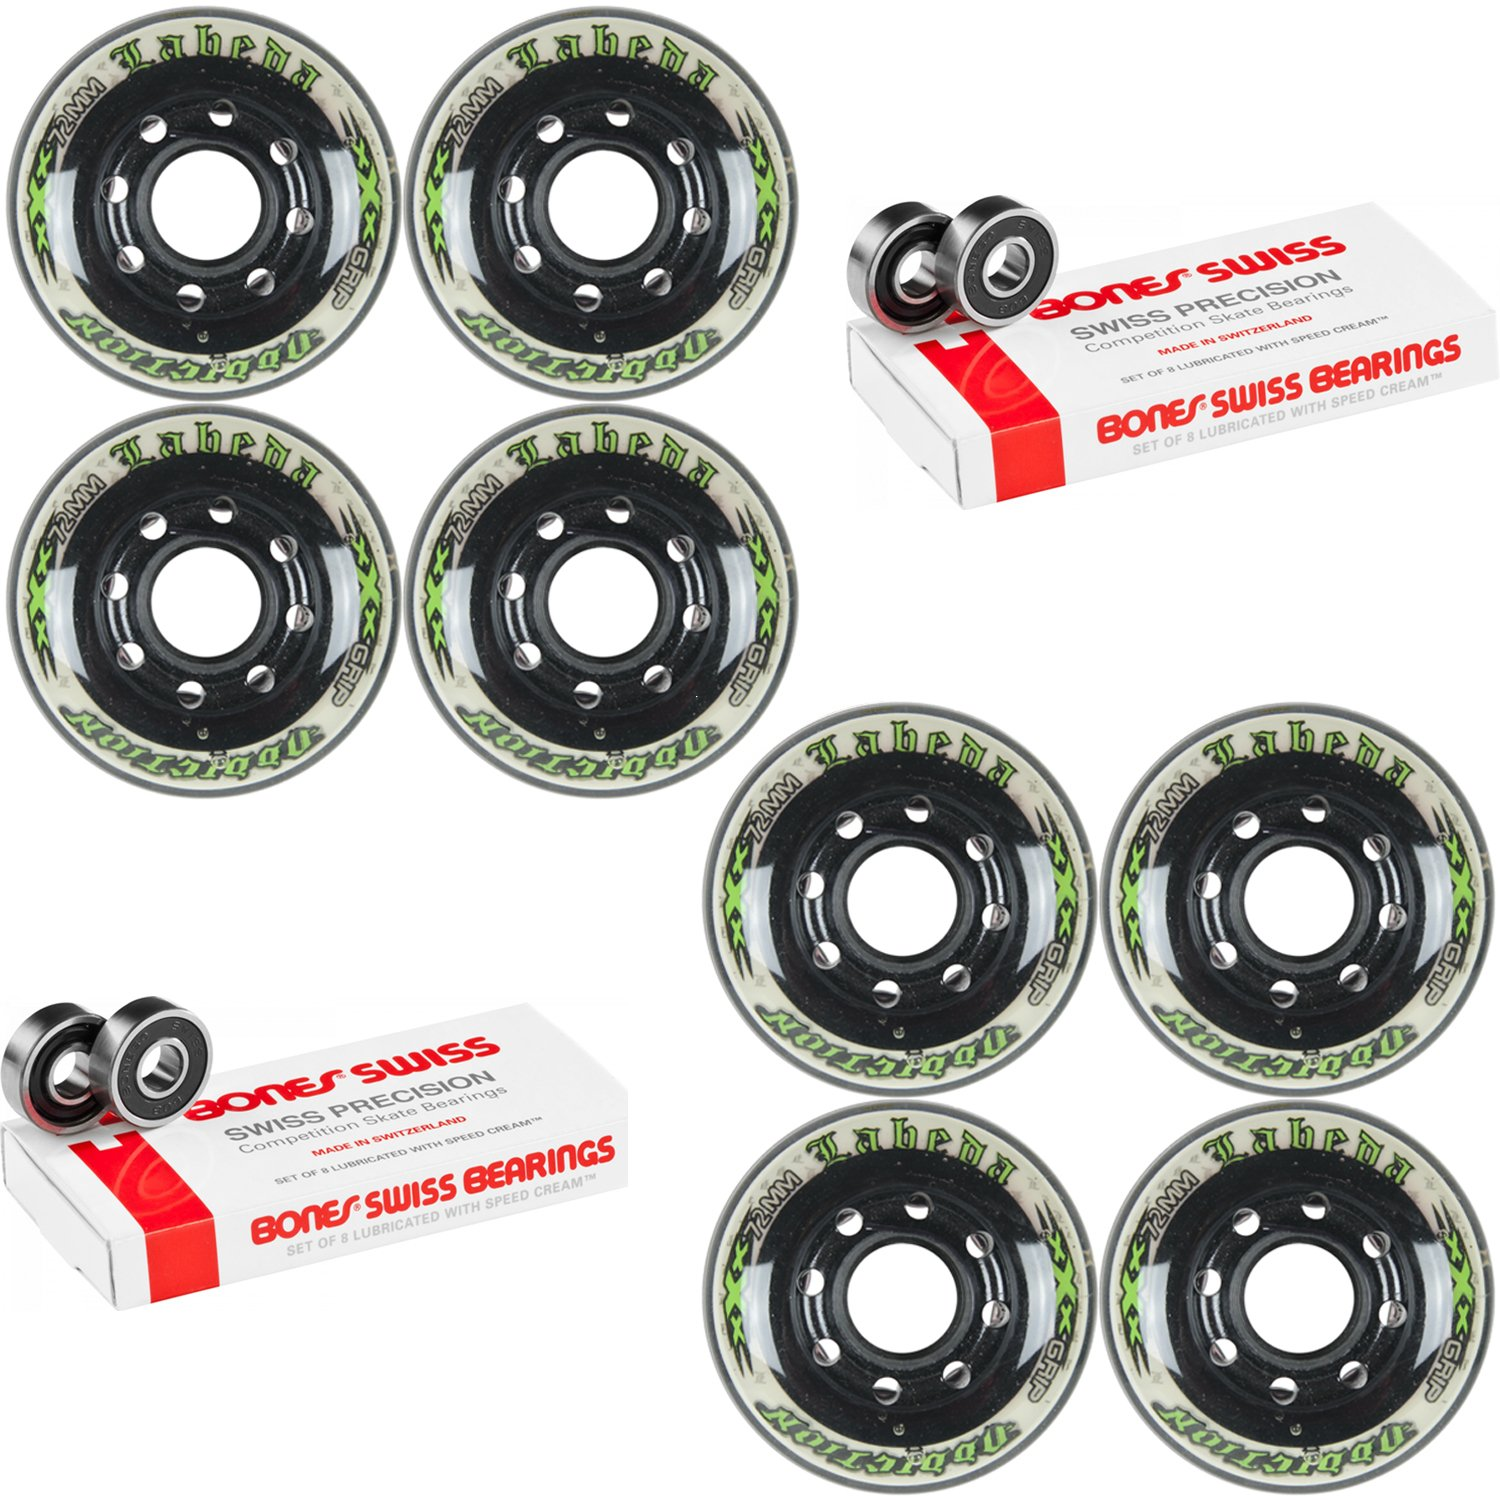 Labeda Addiction Wheels XXX Grip Black/White 72mm Roller Hockey x8 +Bones Swiss